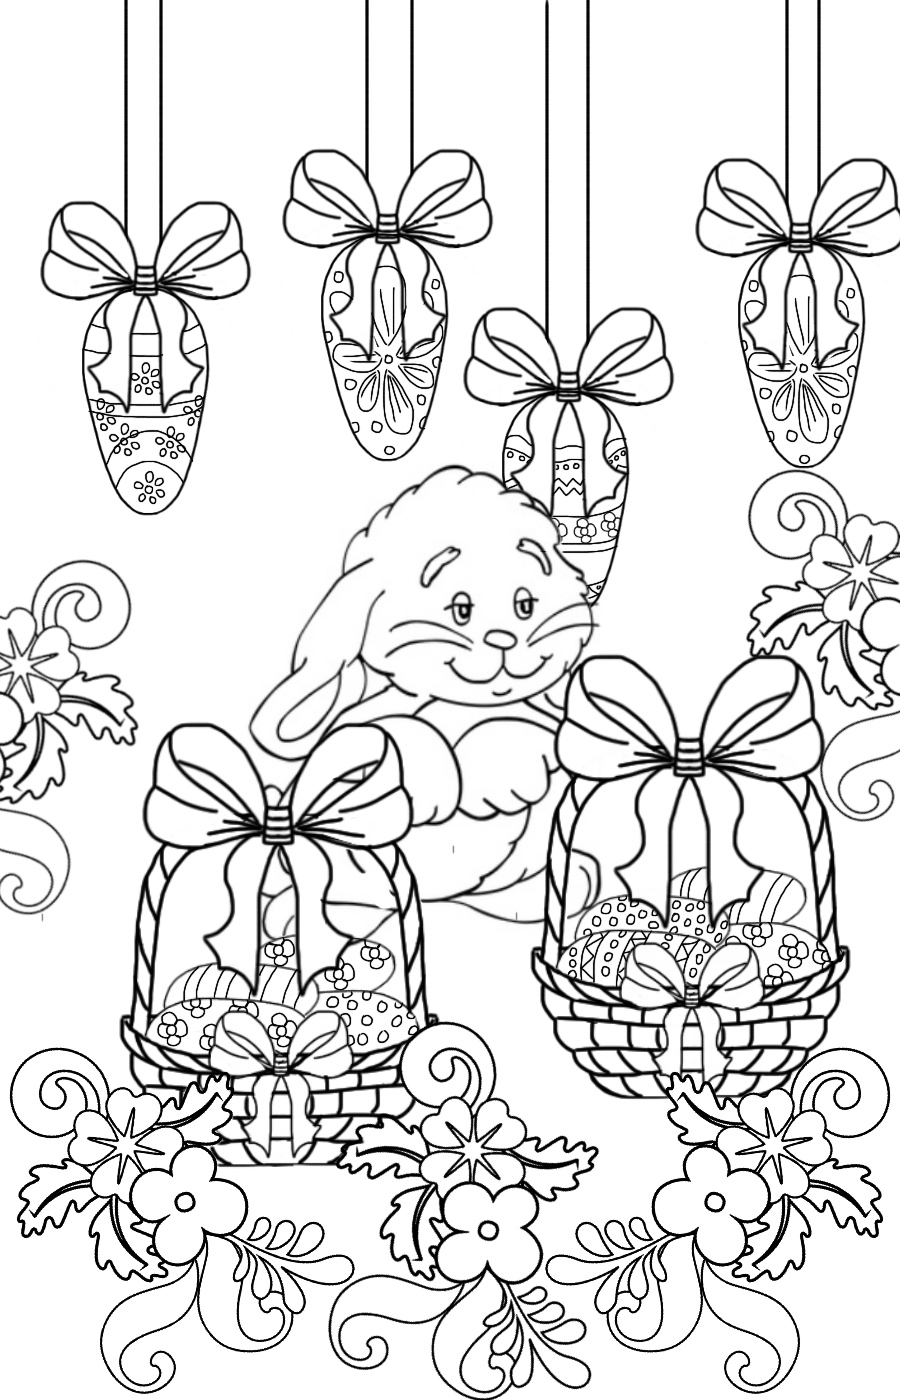 Cute Easter Bunny with Easter Egg Baskets Coloring Page ...